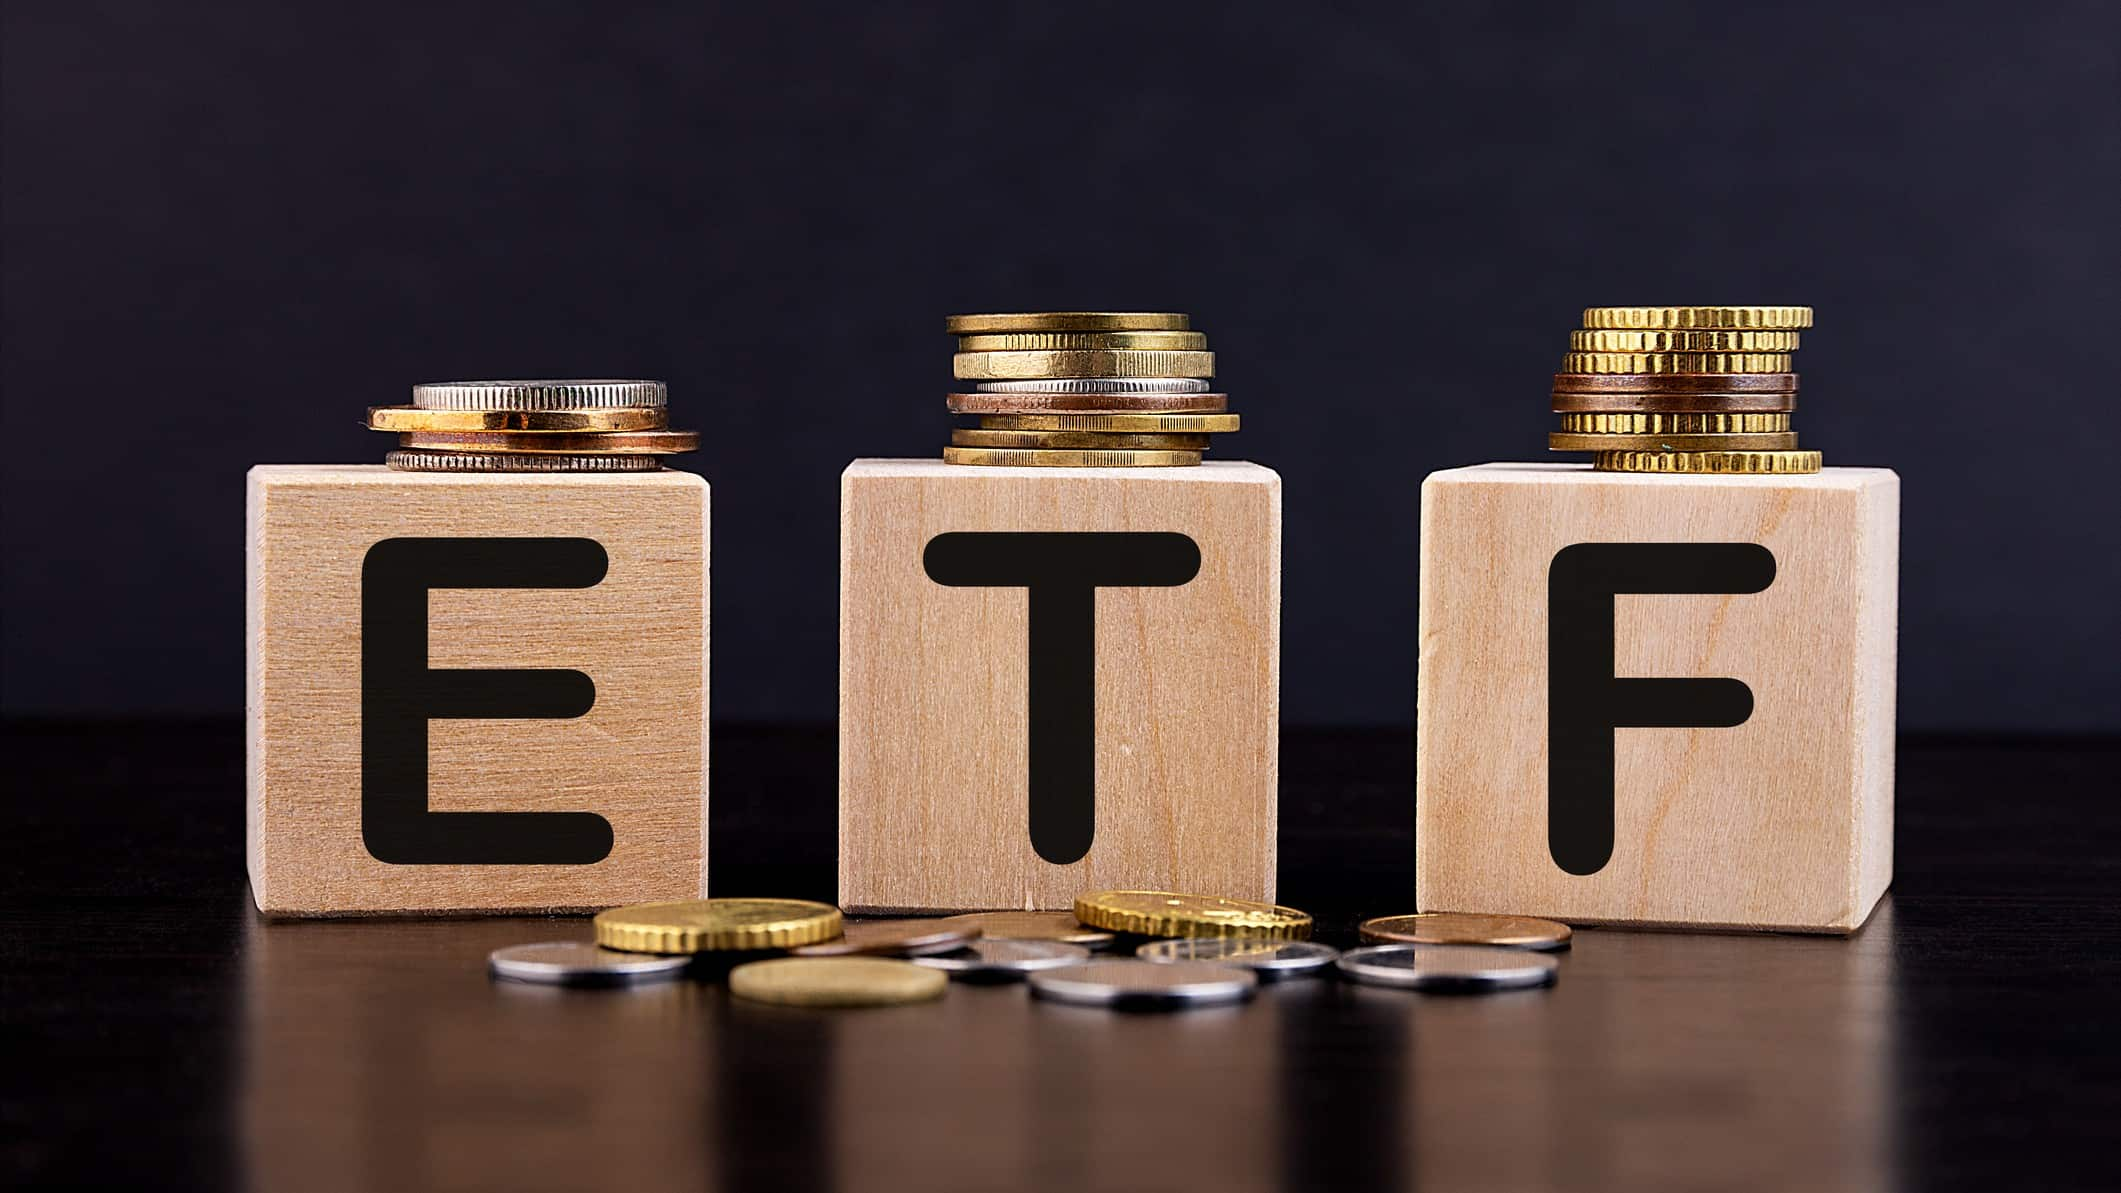 The letters ETF on wooden cubes with golden coins on top of the cubes and on the ground